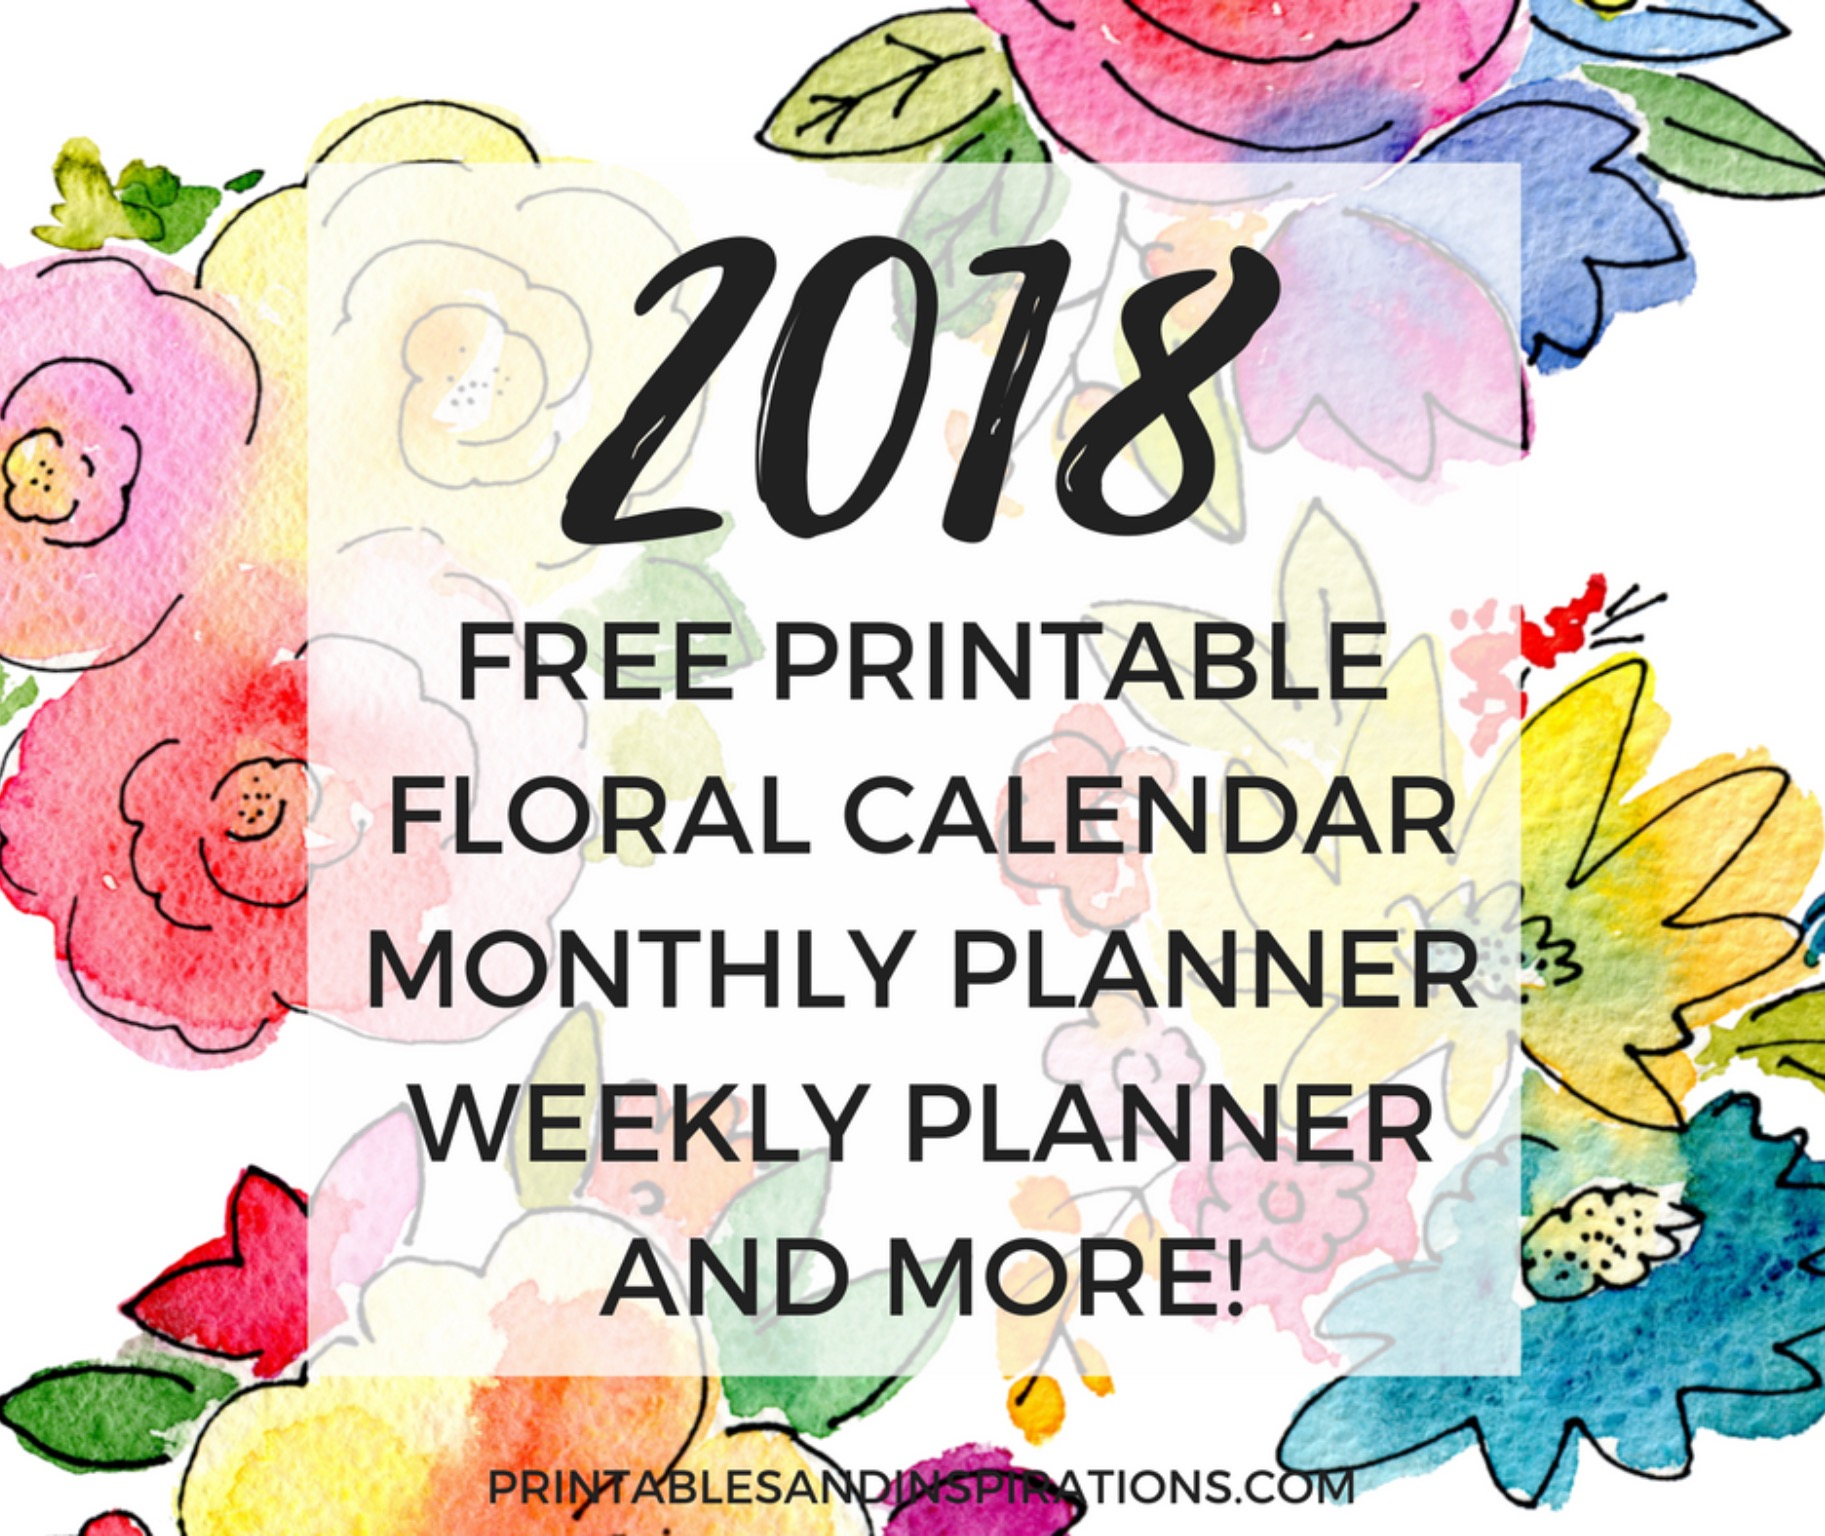 free printable 2018 floral calendar monthly planner weekly planner and more